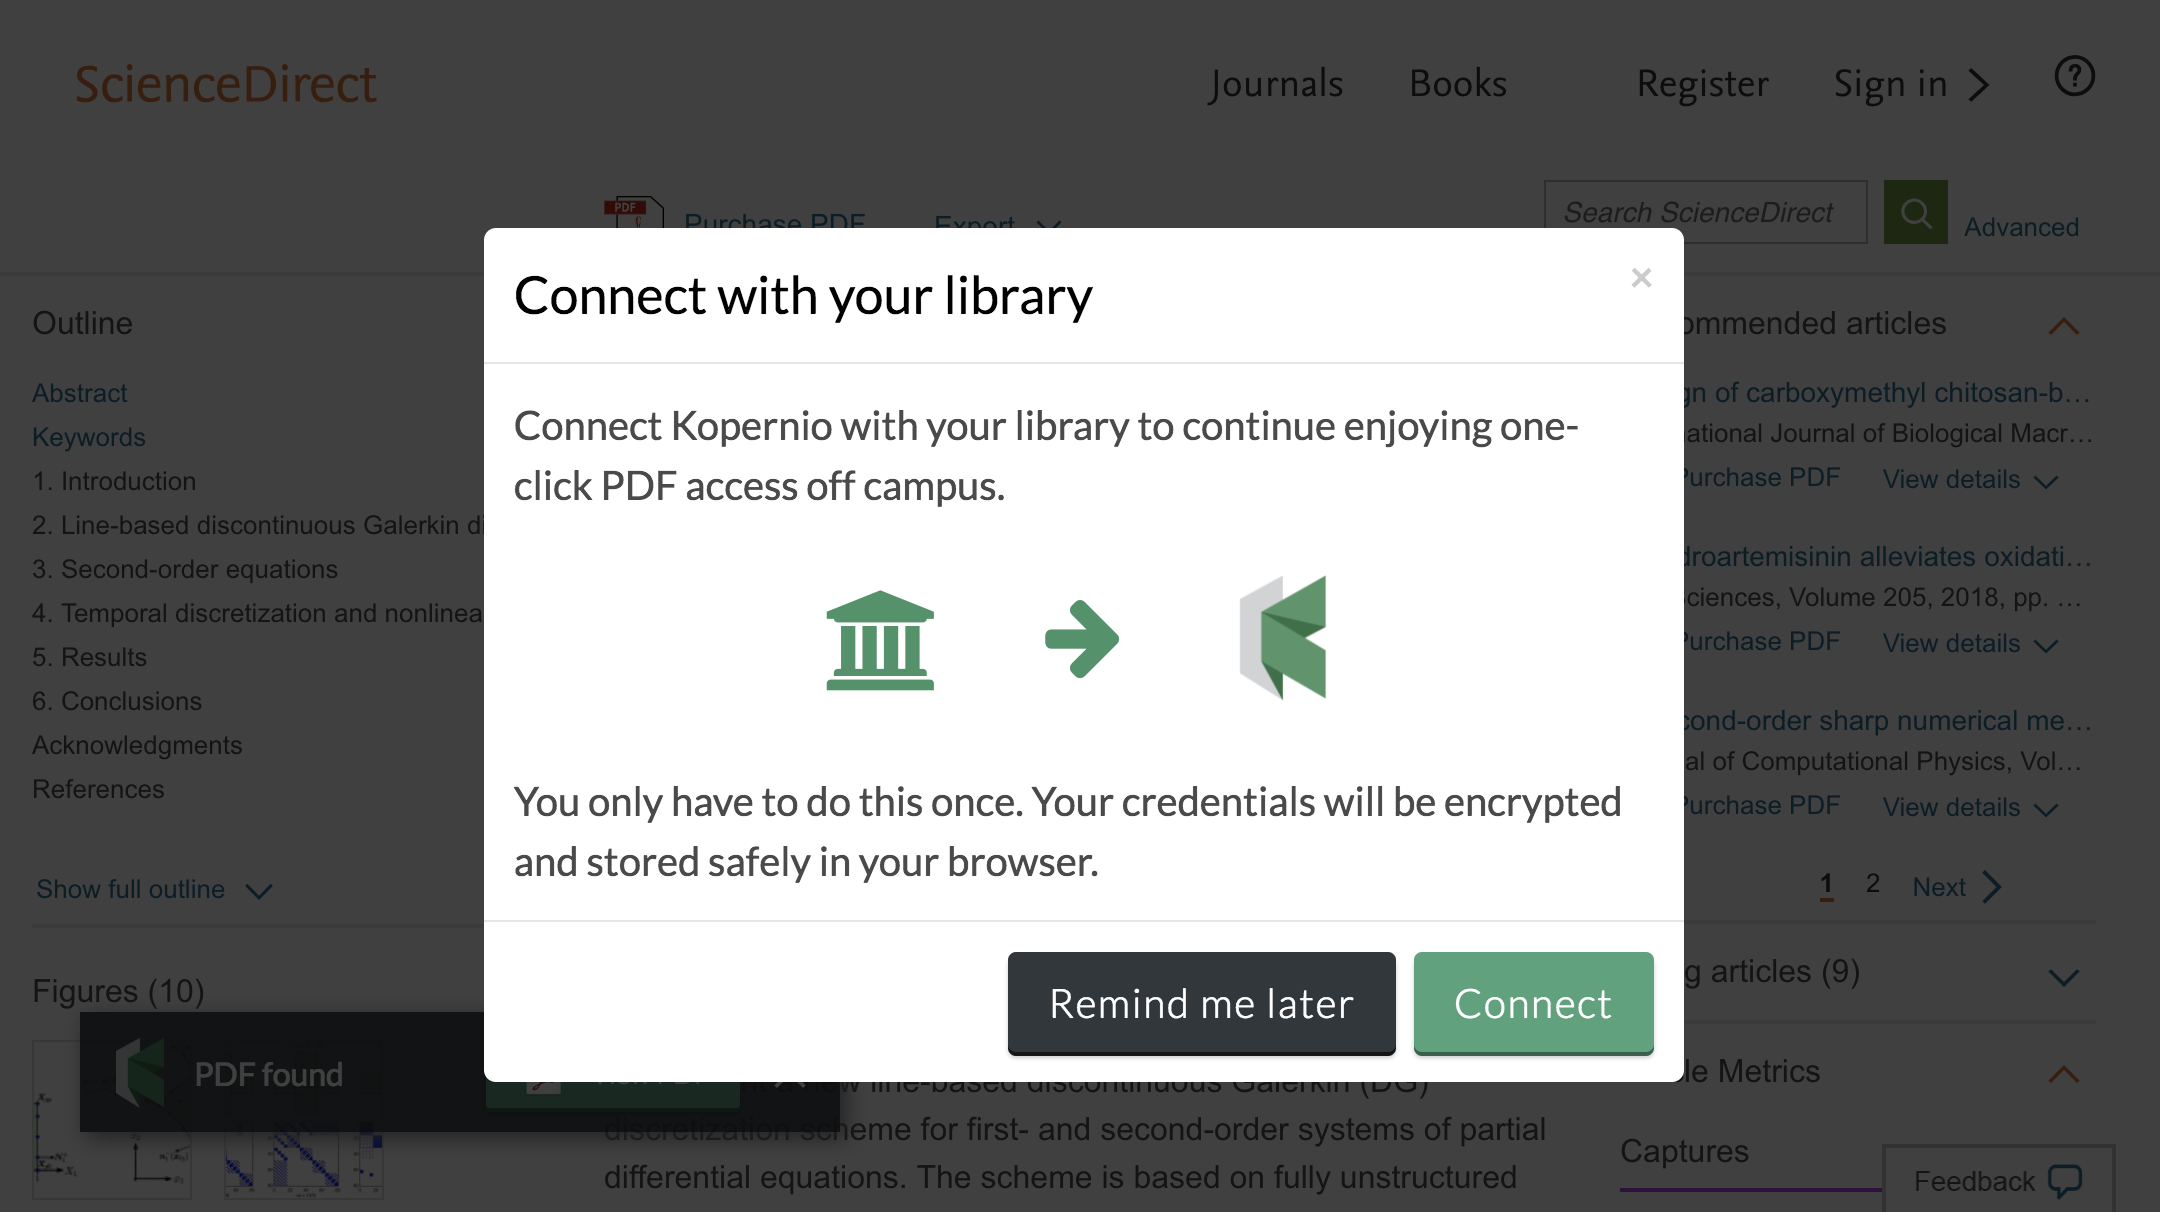 Connect to library prompt for off-campus access to Augustana University e-resources.